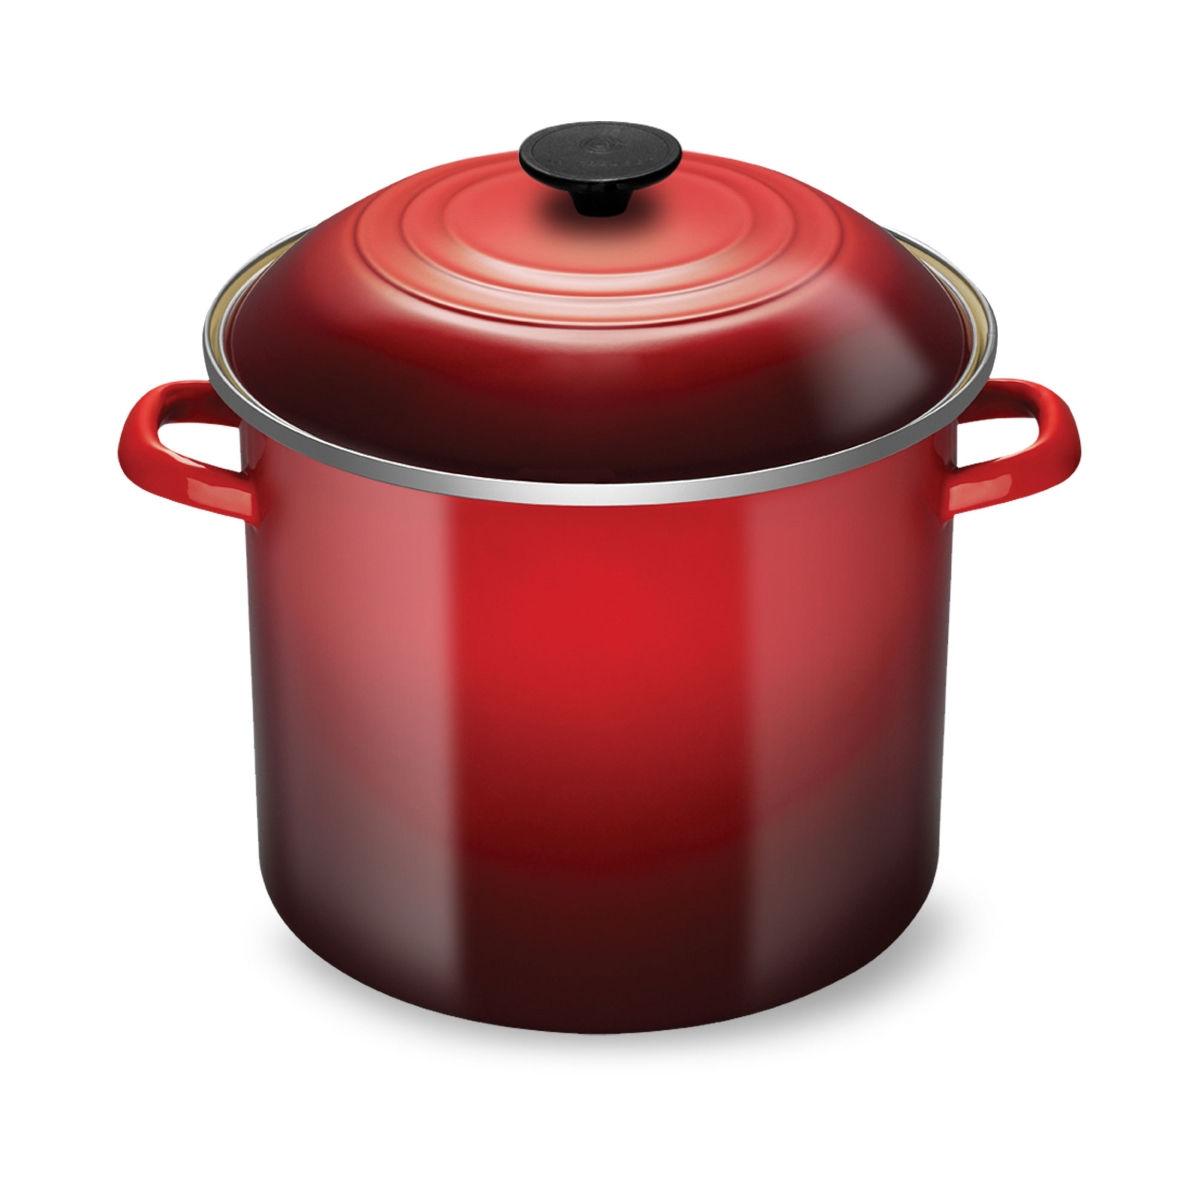 Le Creuset Enameled Steel 10-quart Cherry Red Stock Pot